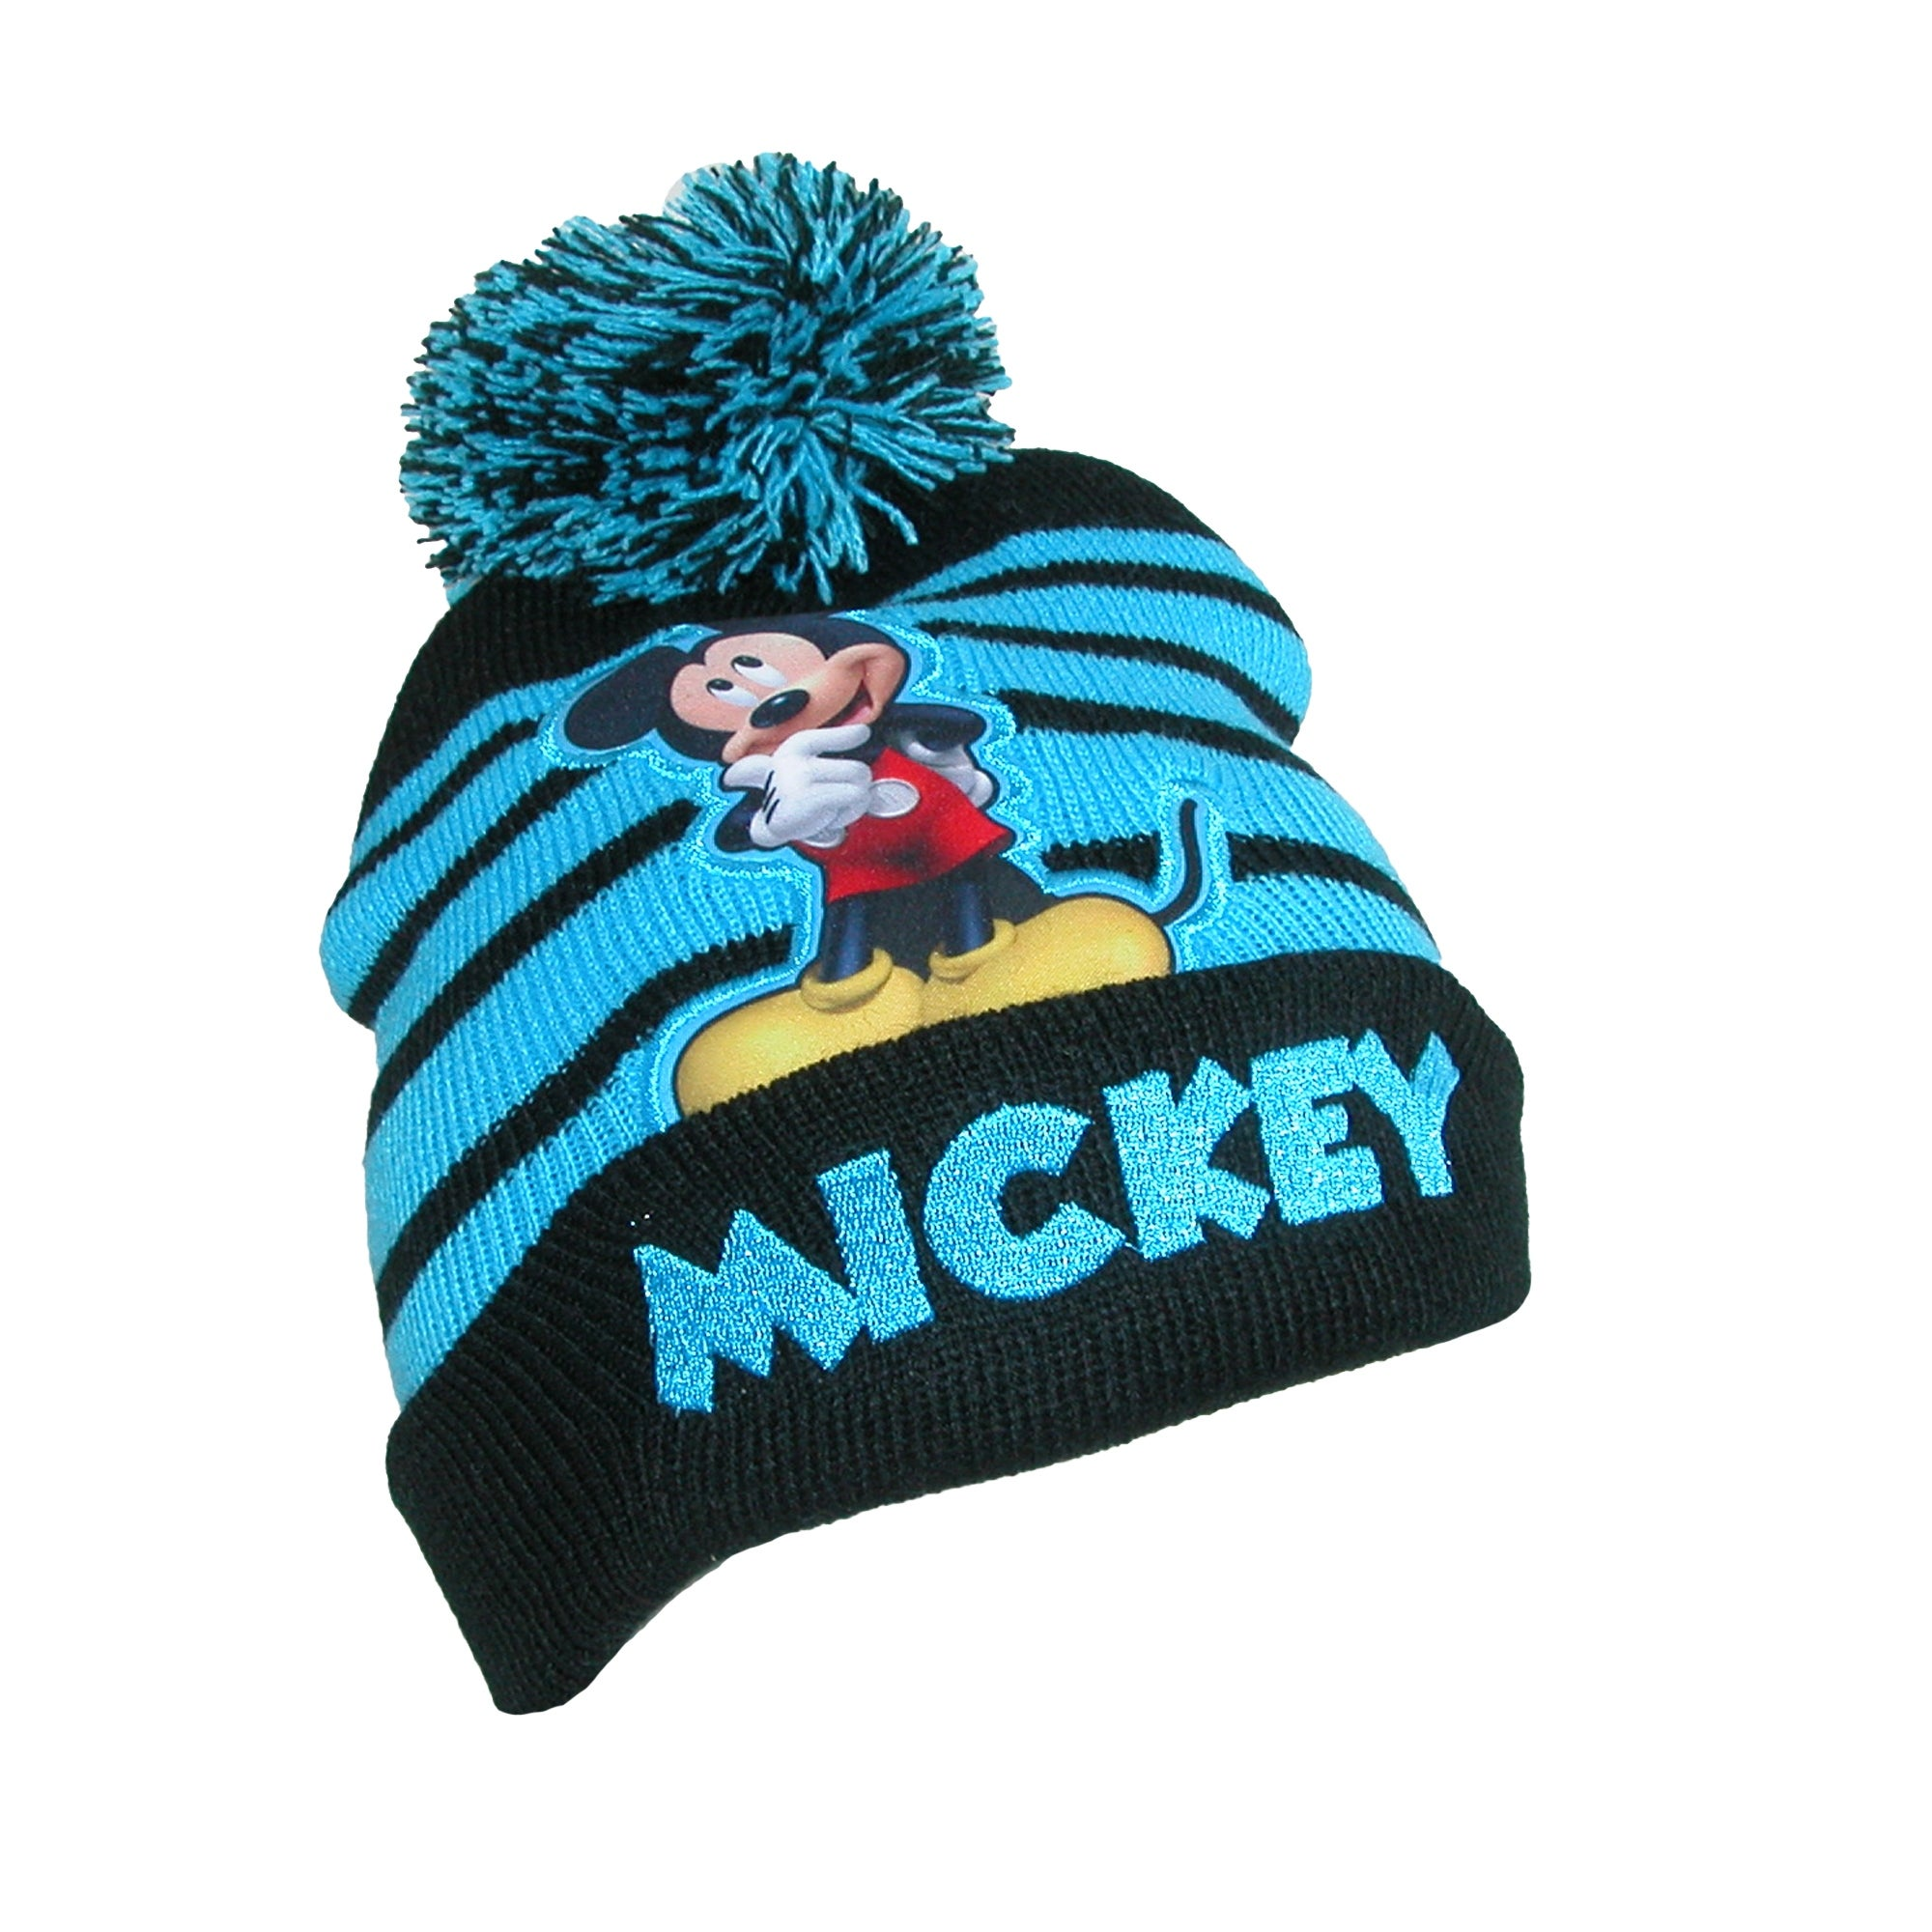 ae8cbd958be21b Shop Disney Infant / Toddler's Mickey Mouse Hat and Mitten Winter Set -  Free Shipping On Orders Over $45 - Overstock - 17904750